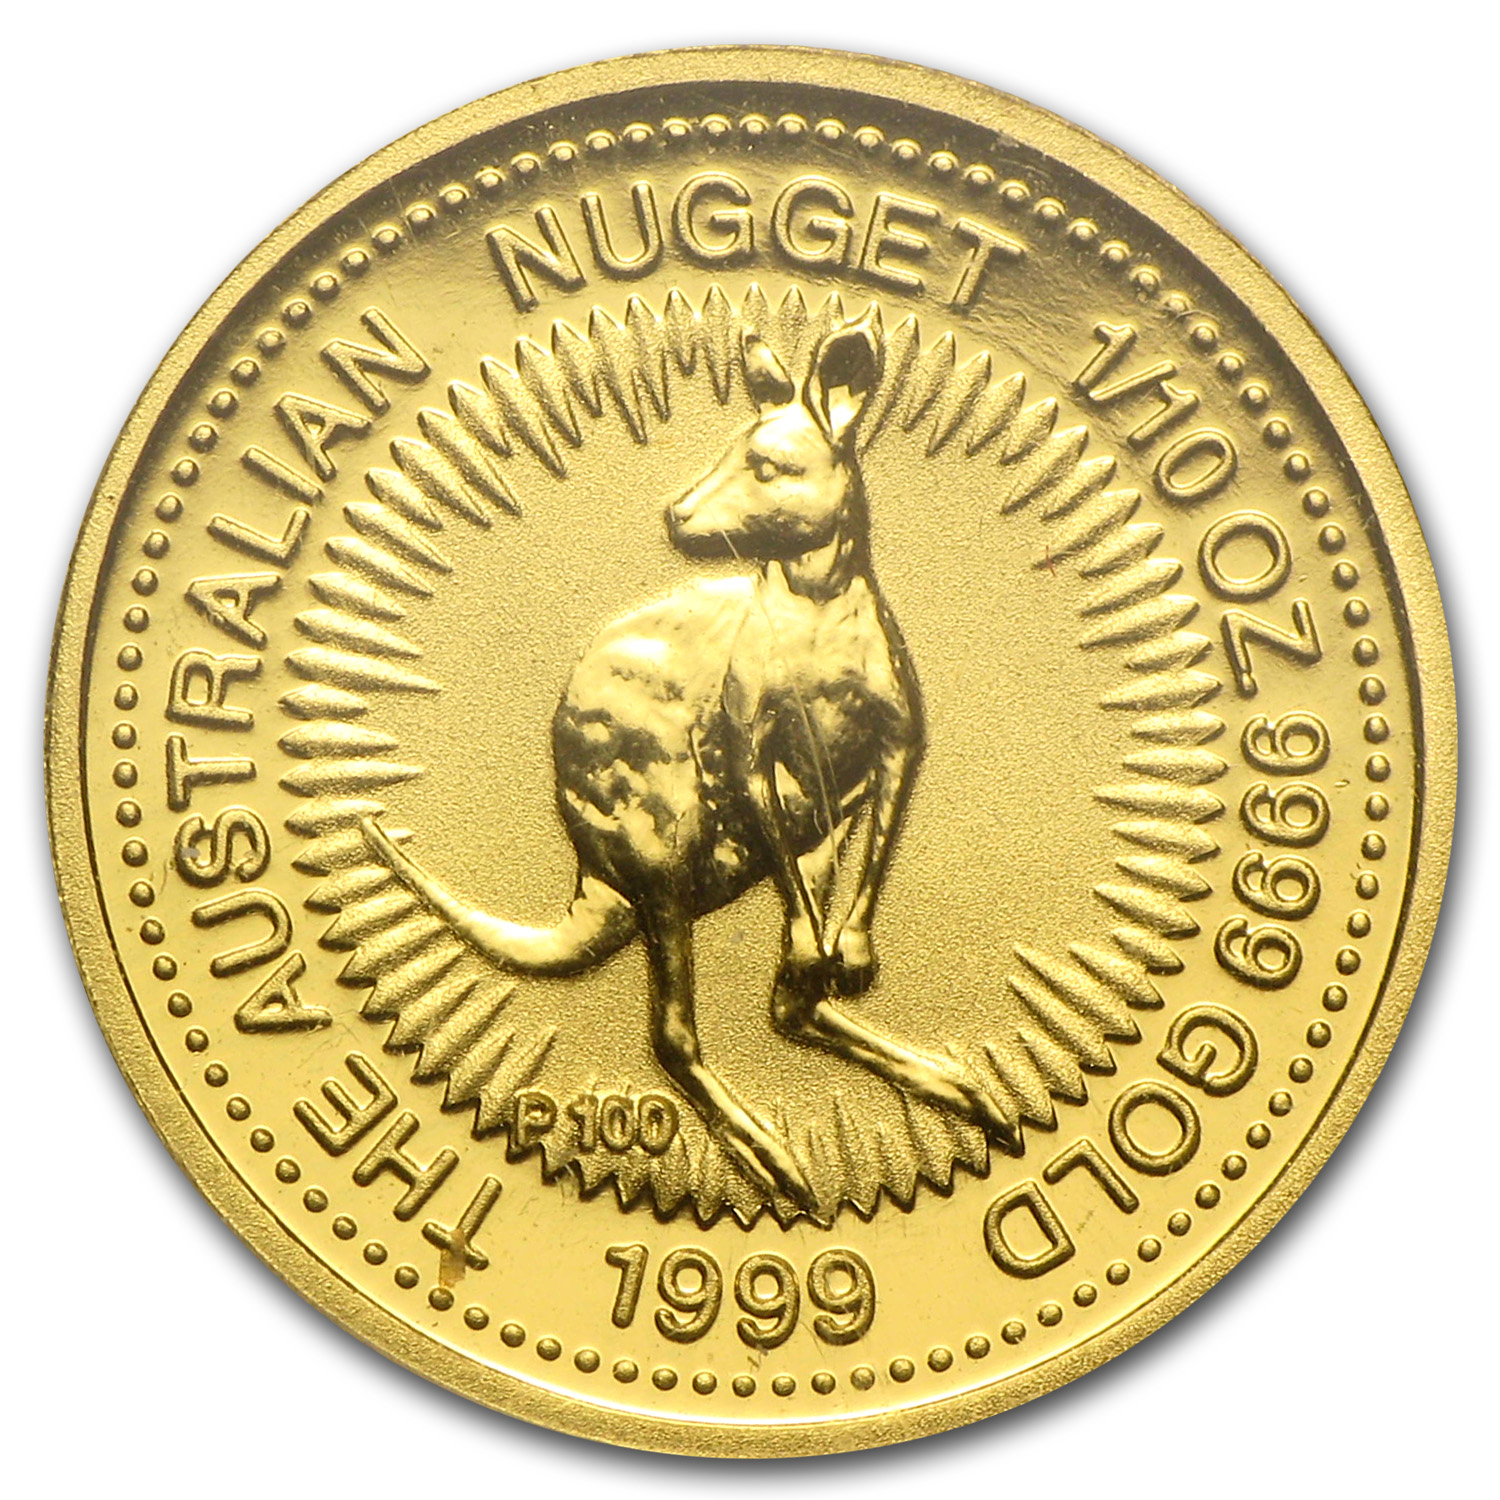 1999 1/10 oz Australian Gold Nugget